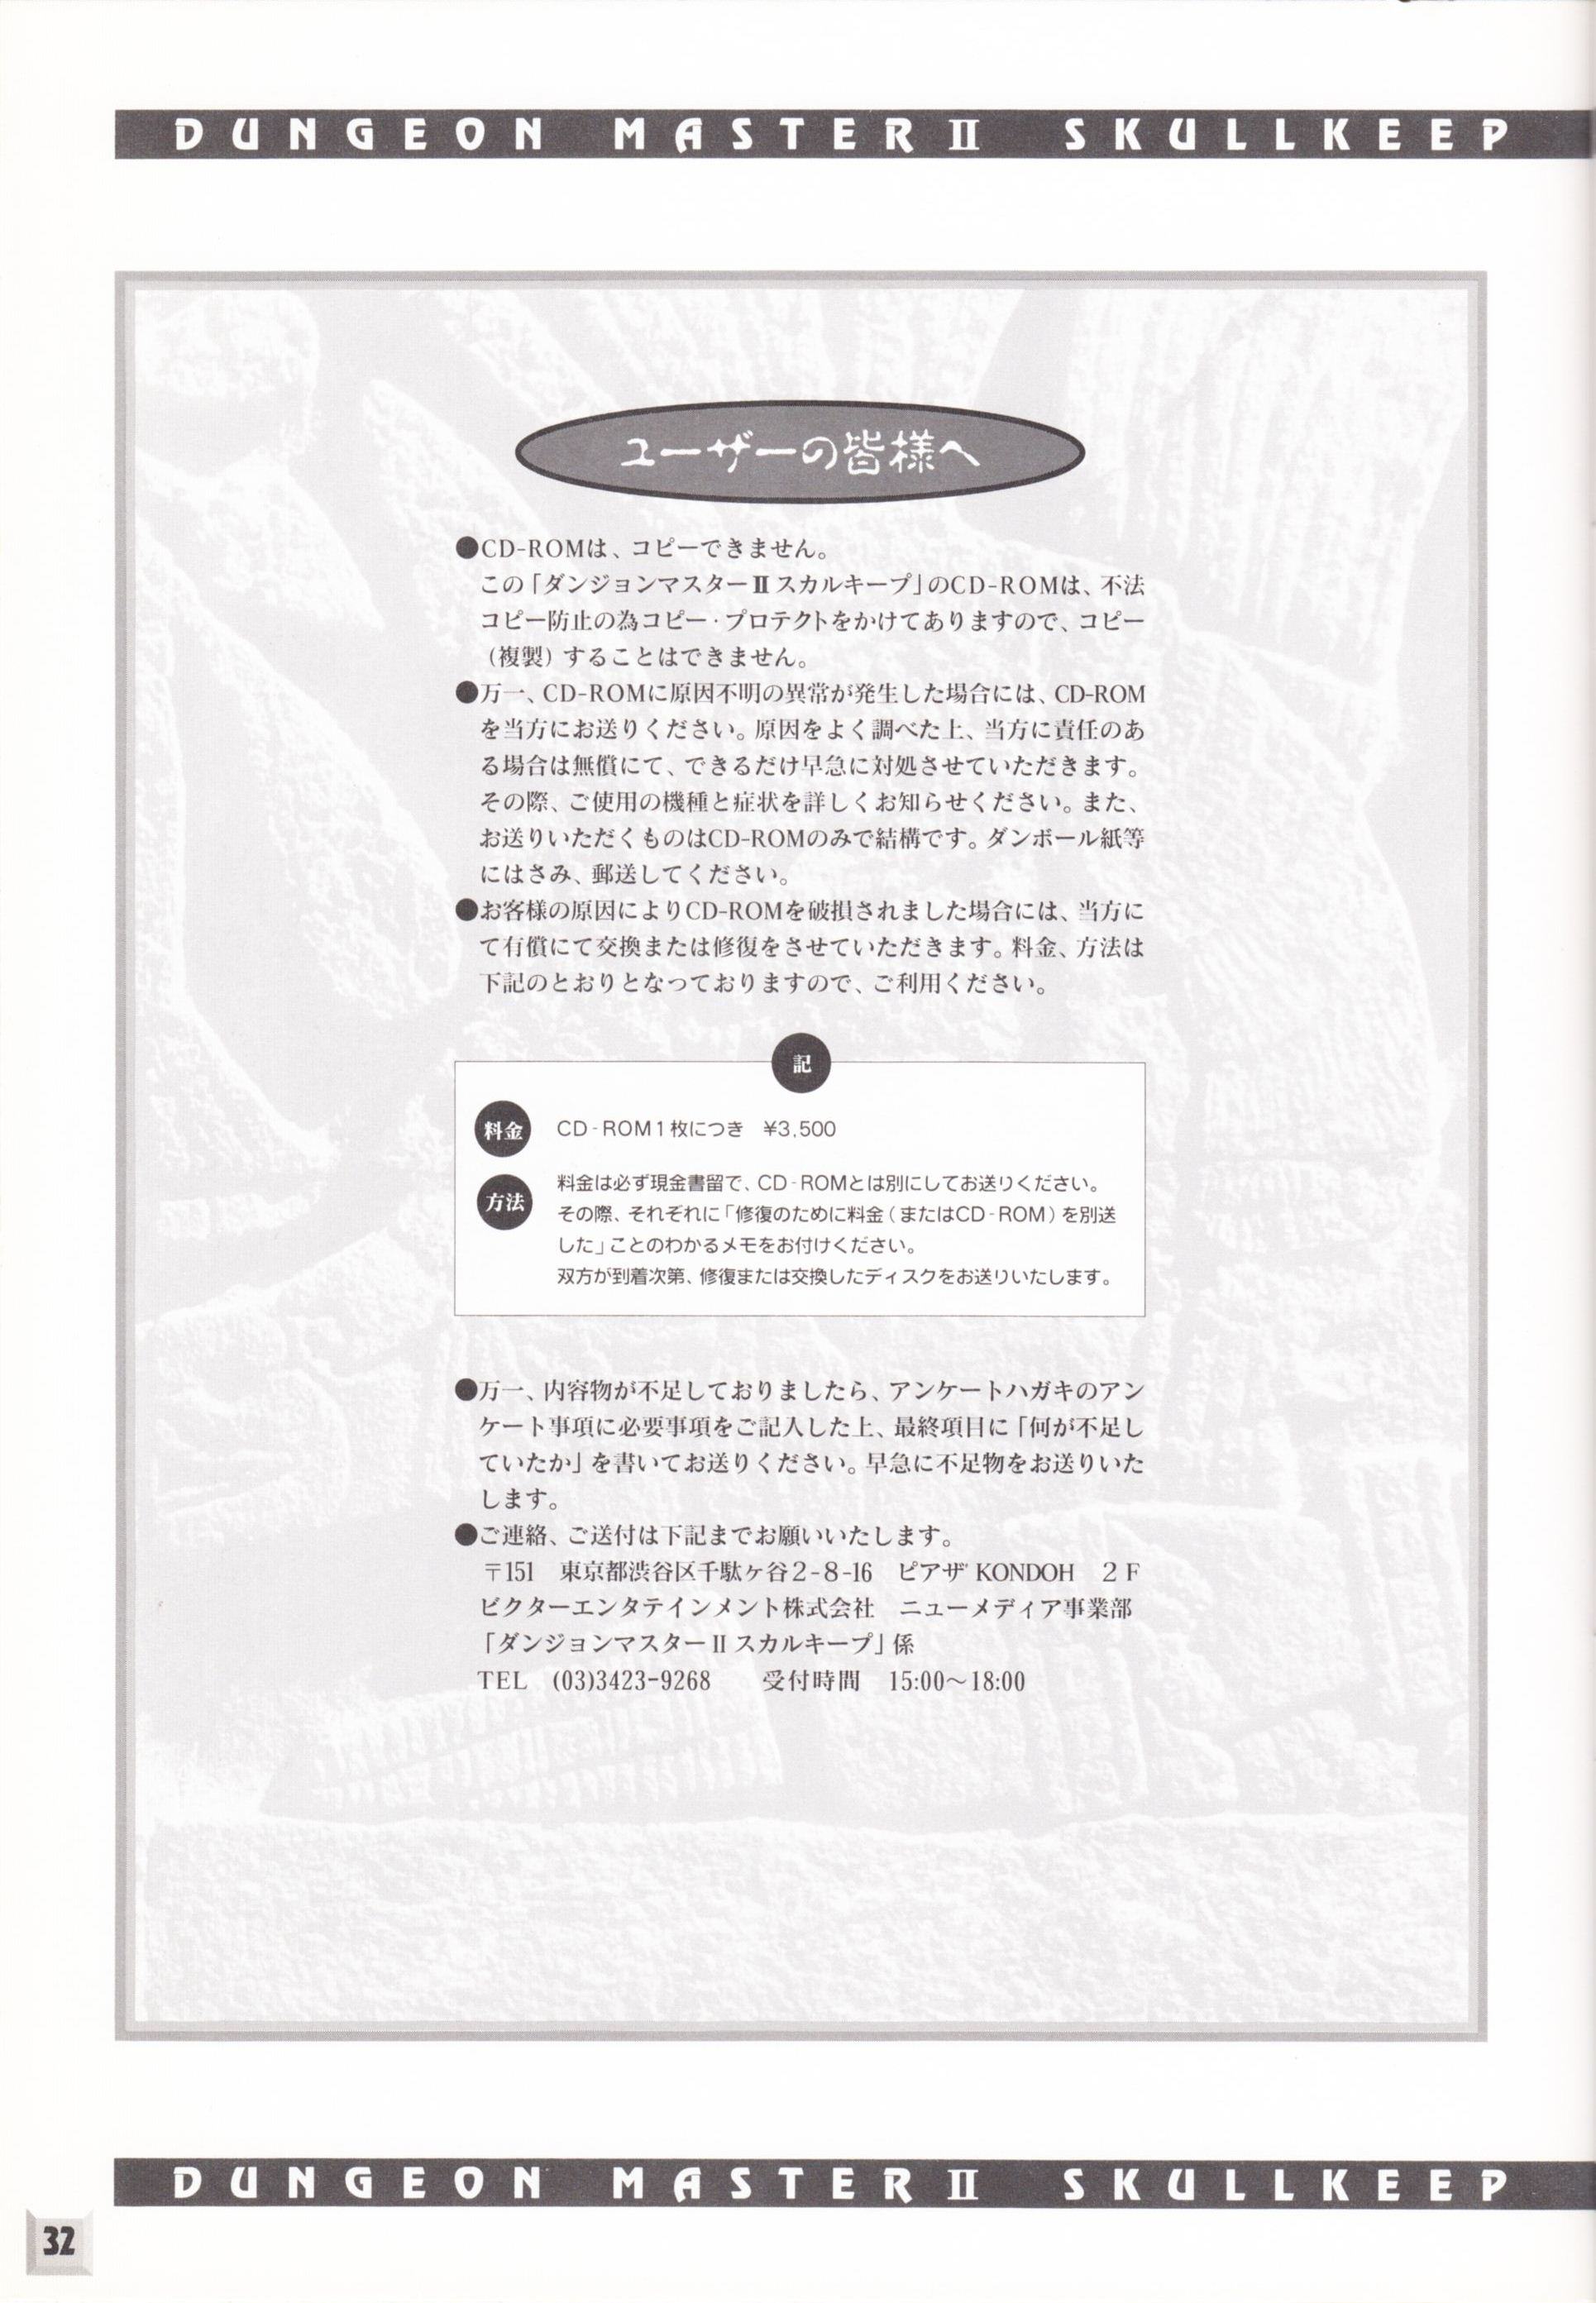 Game - Dungeon Master II - JP - FM Towns - An Operation Manual - Page 034 - Scan